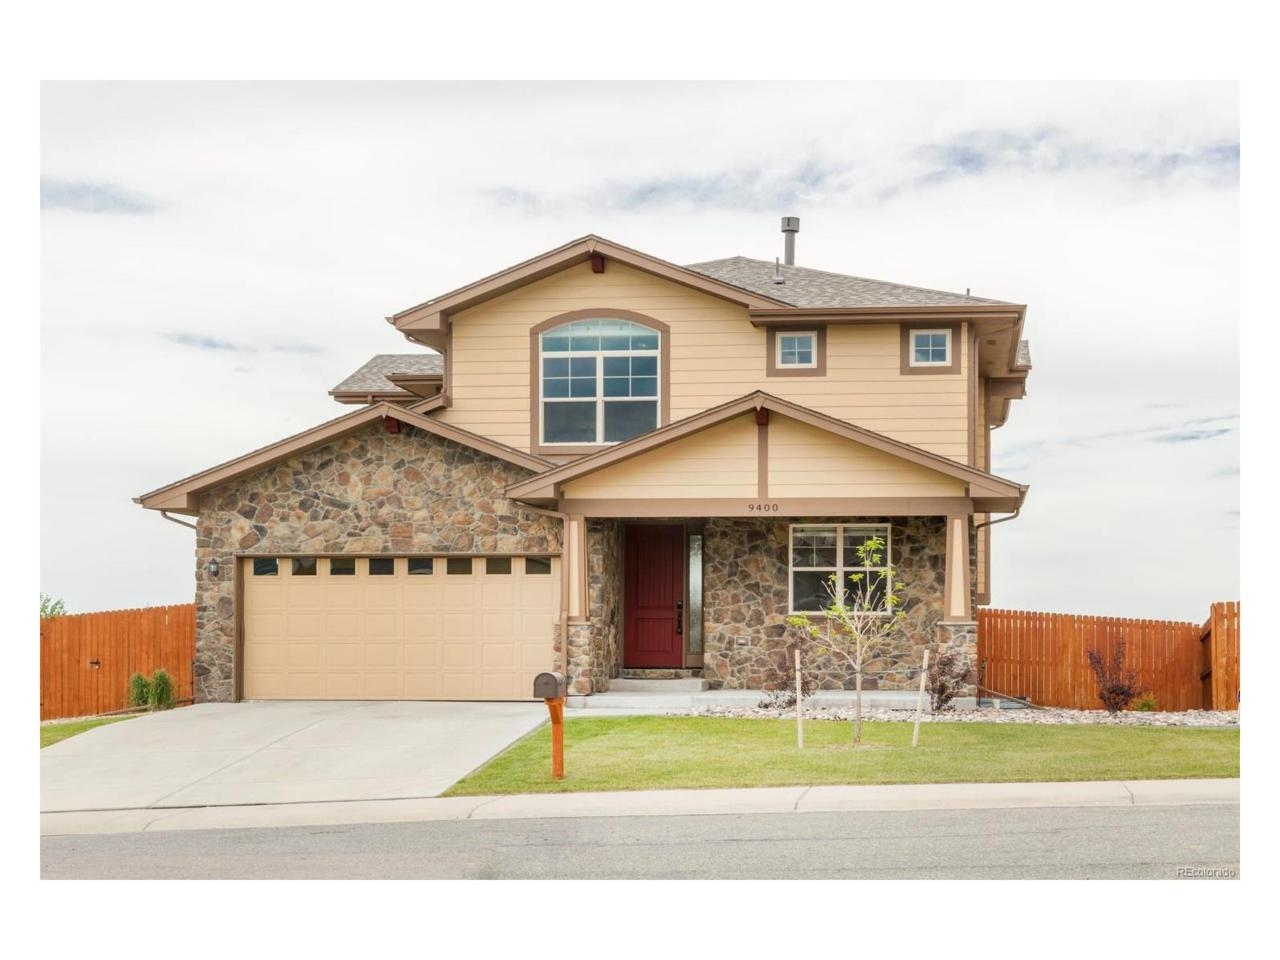 9400 Yucca Way, Thornton, CO 80229 (MLS #8431122) :: 8z Real Estate